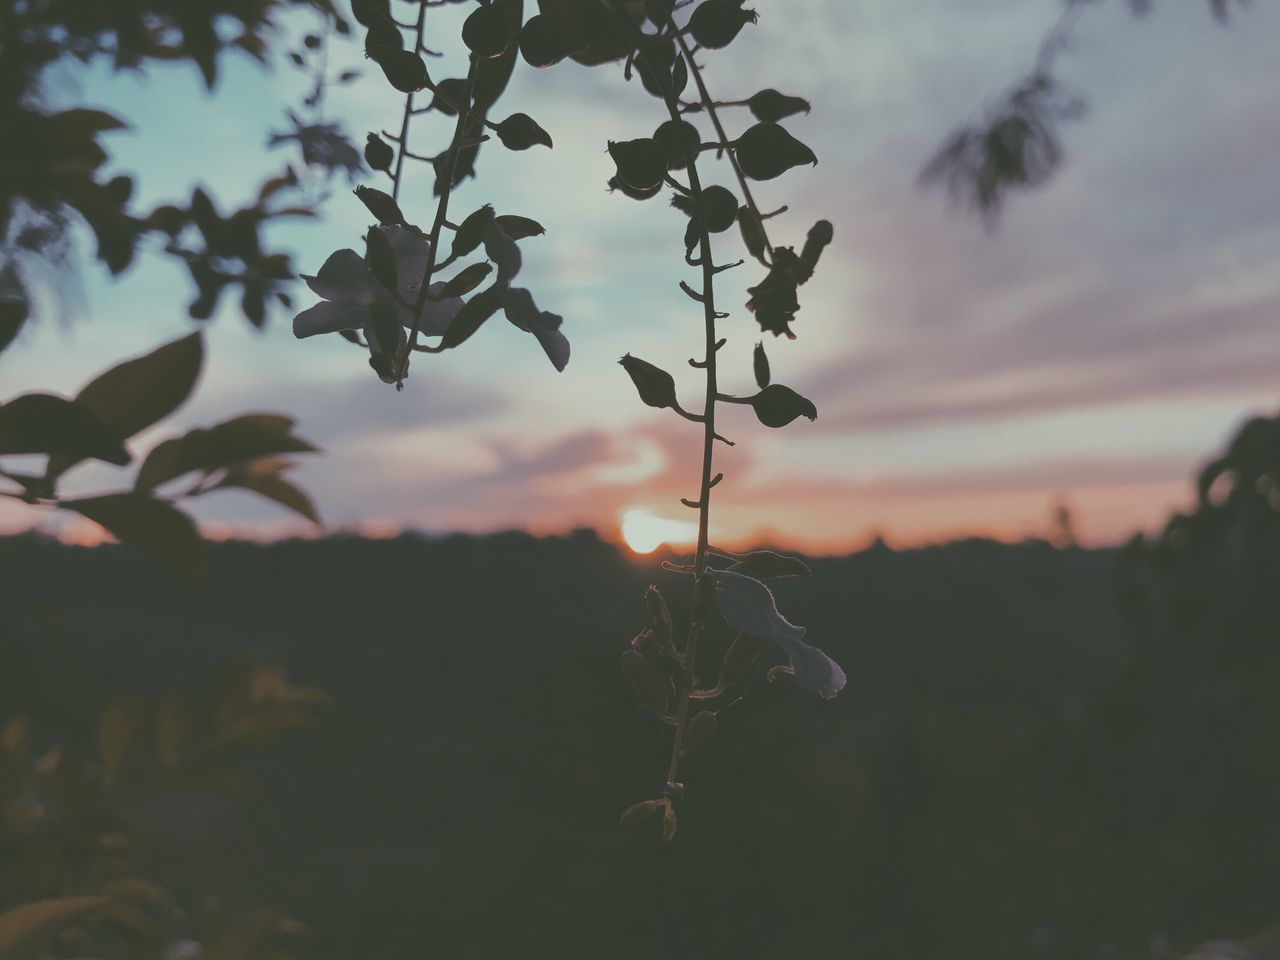 nature, leaf, plant, growth, outdoors, no people, beauty in nature, focus on foreground, day, close-up, tree, fragility, sky